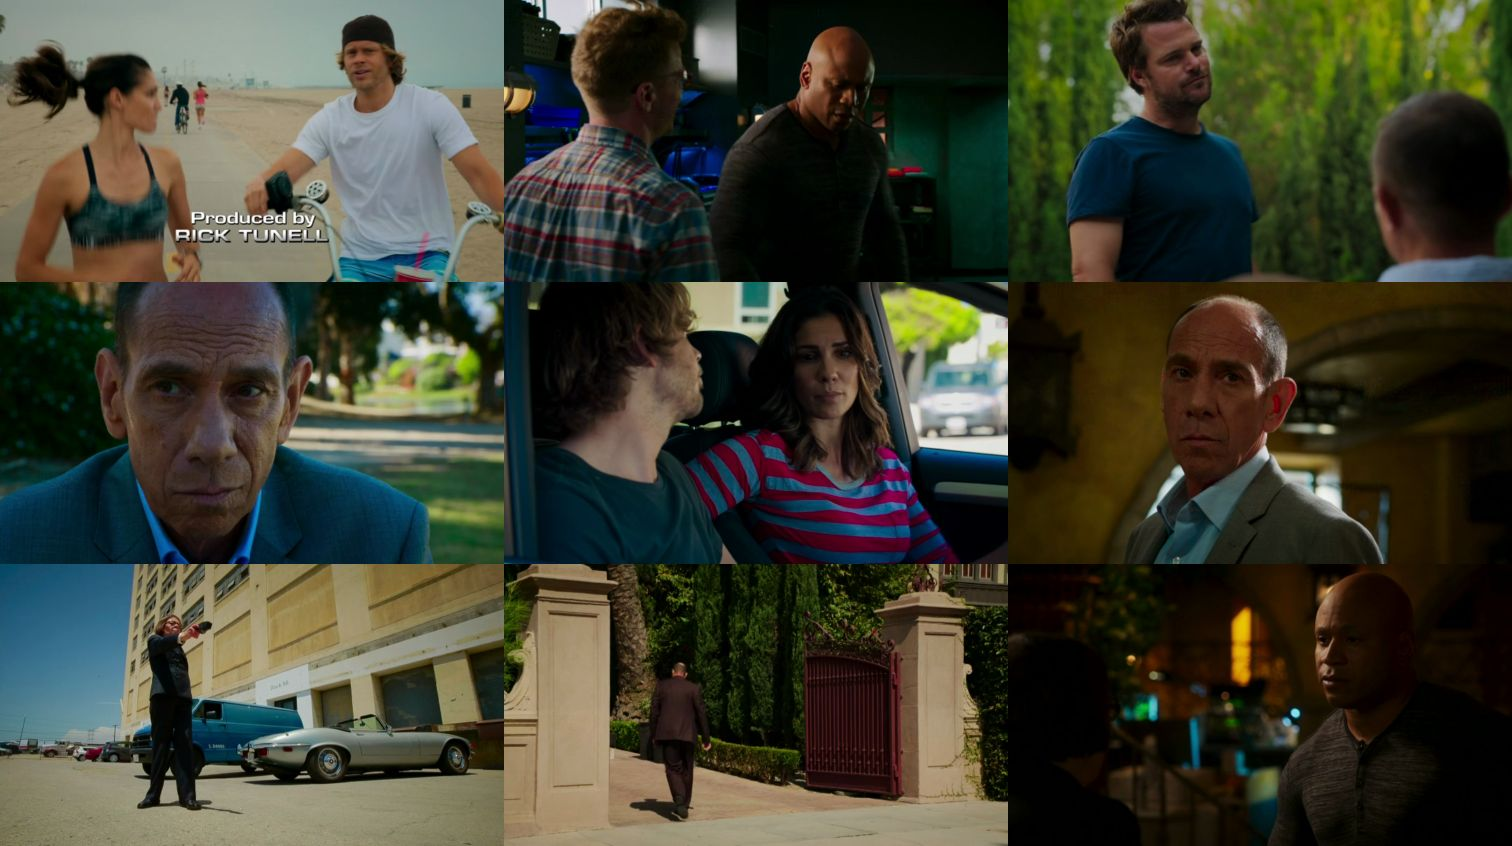 NCIS Los Angeles S07E01 720p HDTV X264-DIMENSION